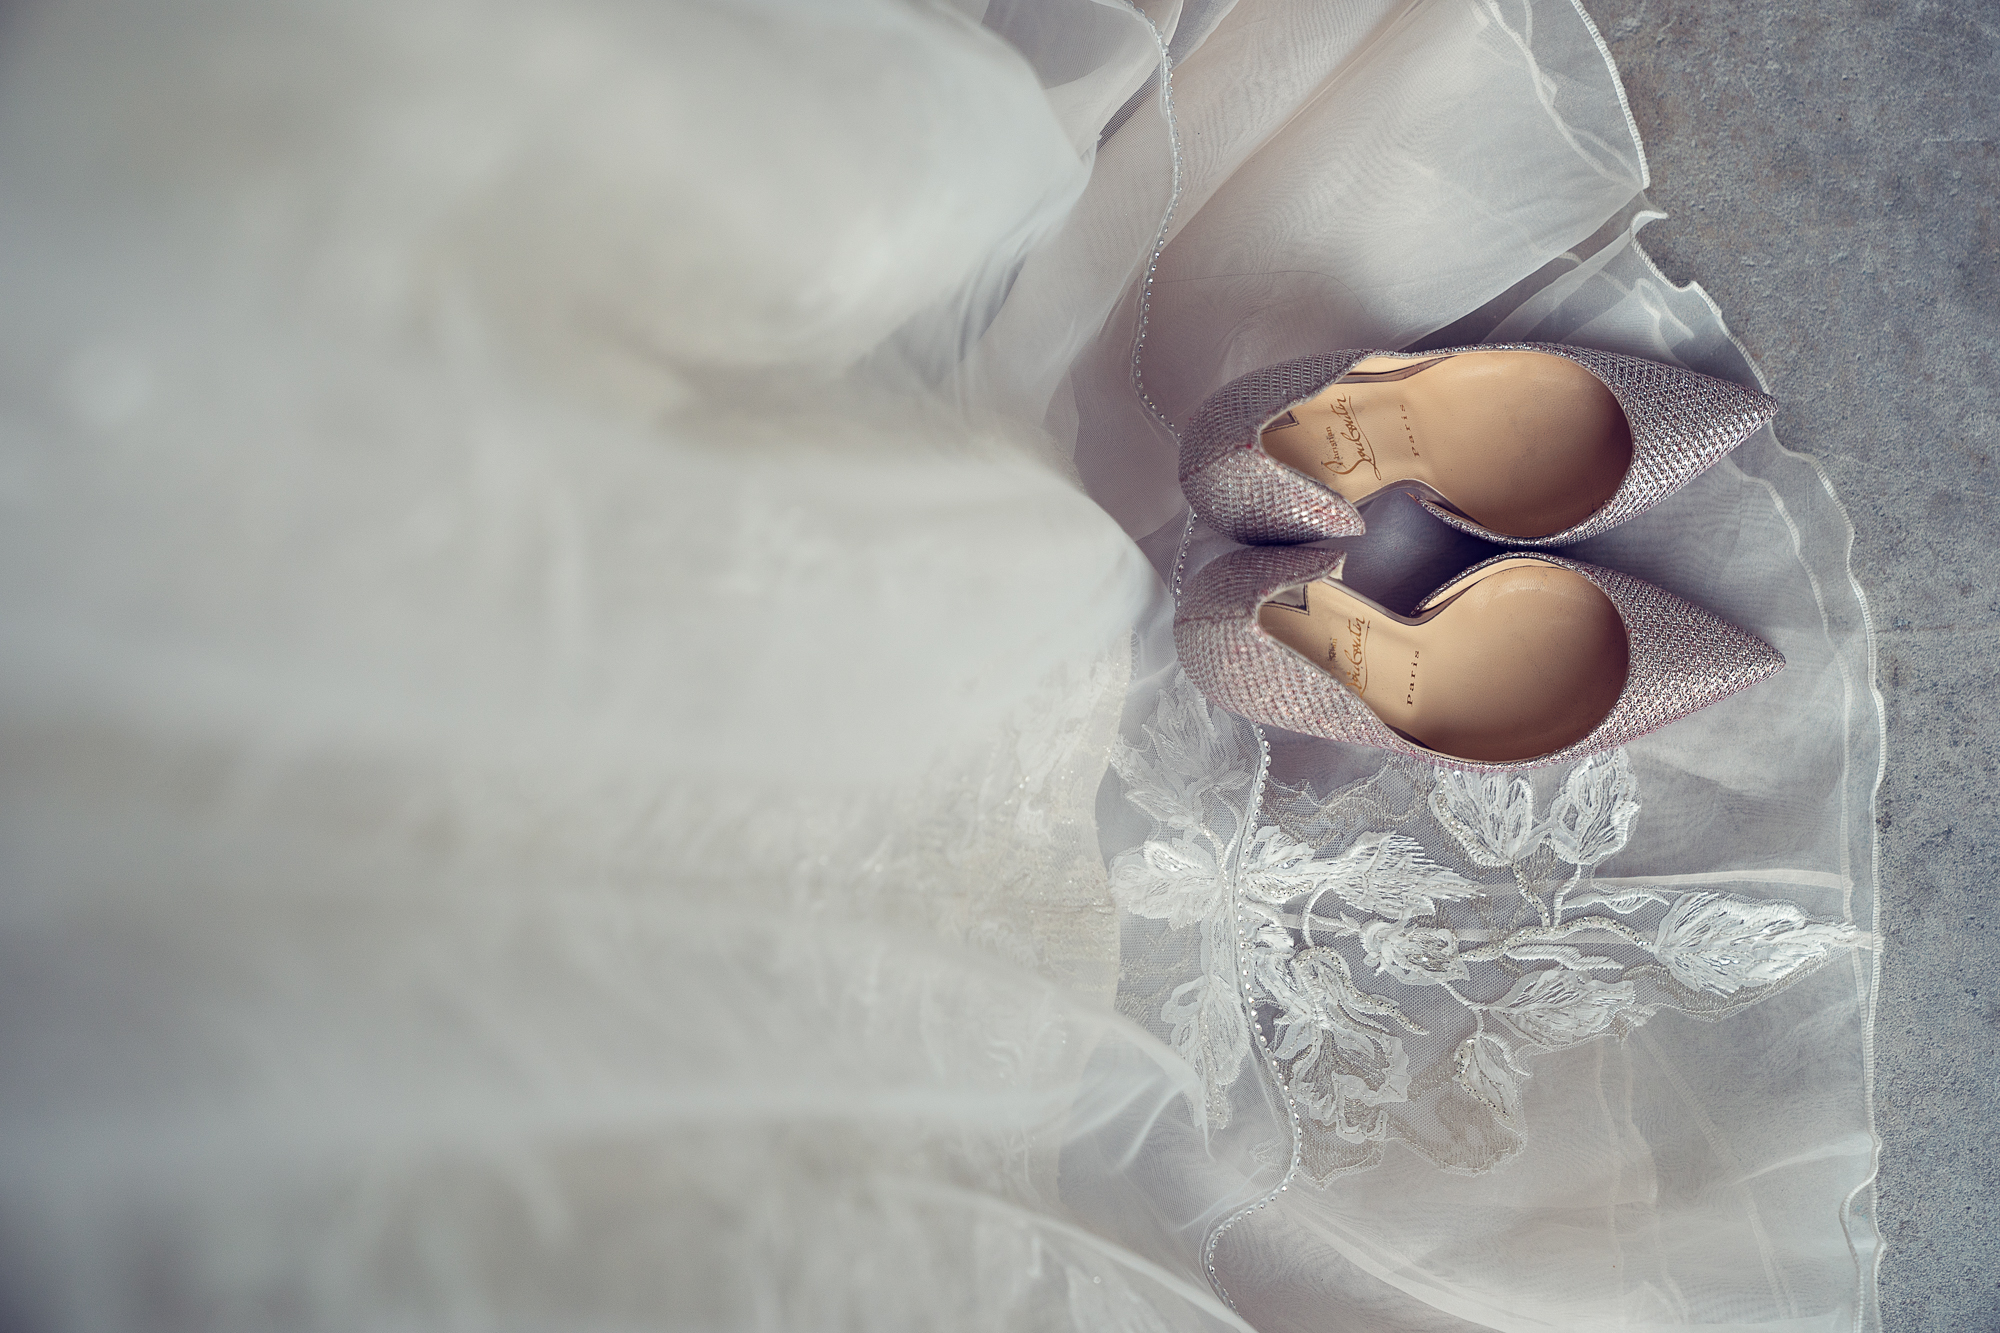 Louboutins for a wedding. Shot on Sony A9